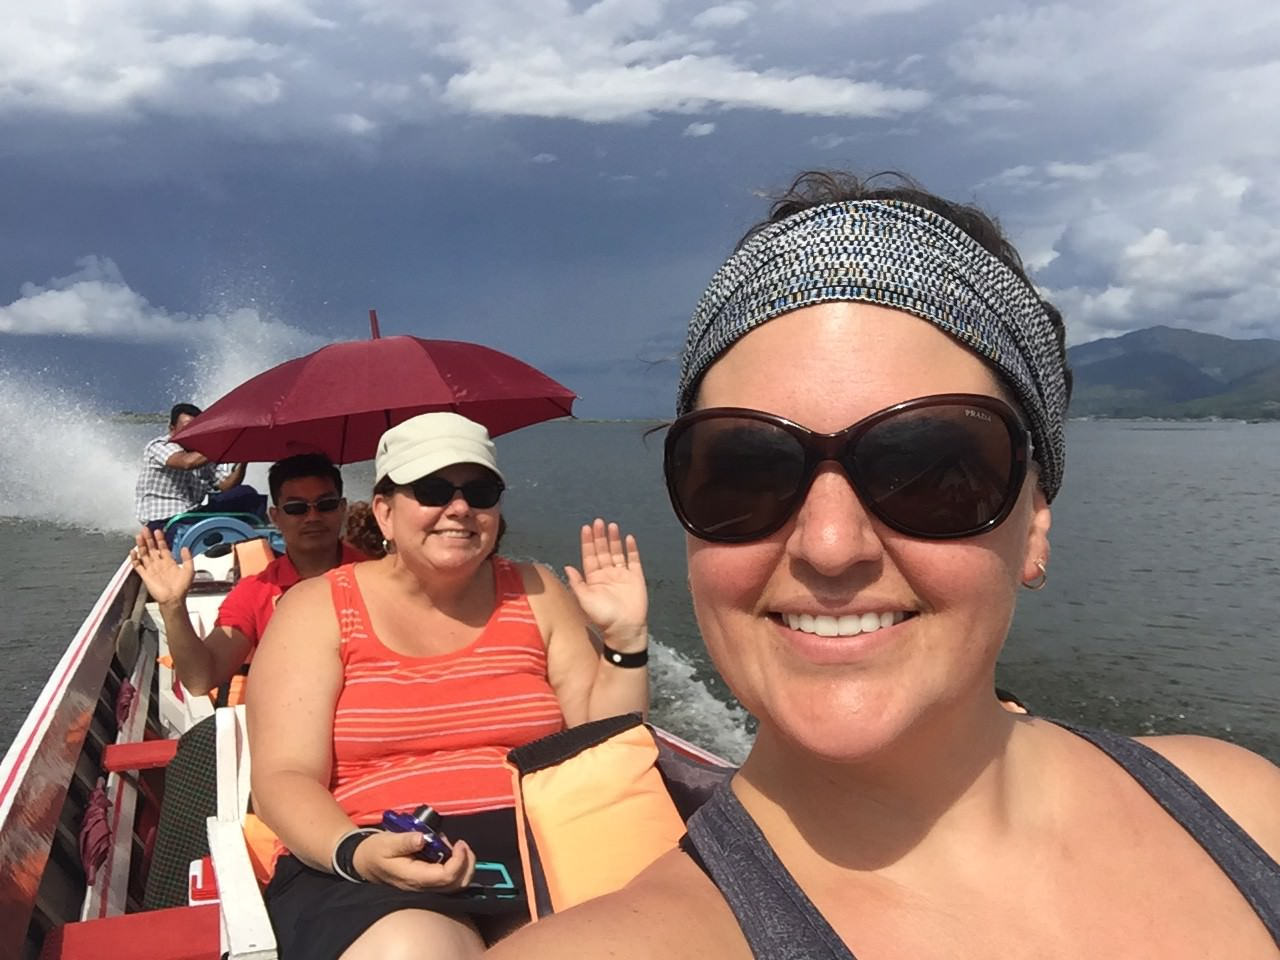 Me, Heather, Nanda, and our captain enjoy perfect weather on the bright blue lake, surrounded by mountain peaks on every side. © 2015 Gail Jessen